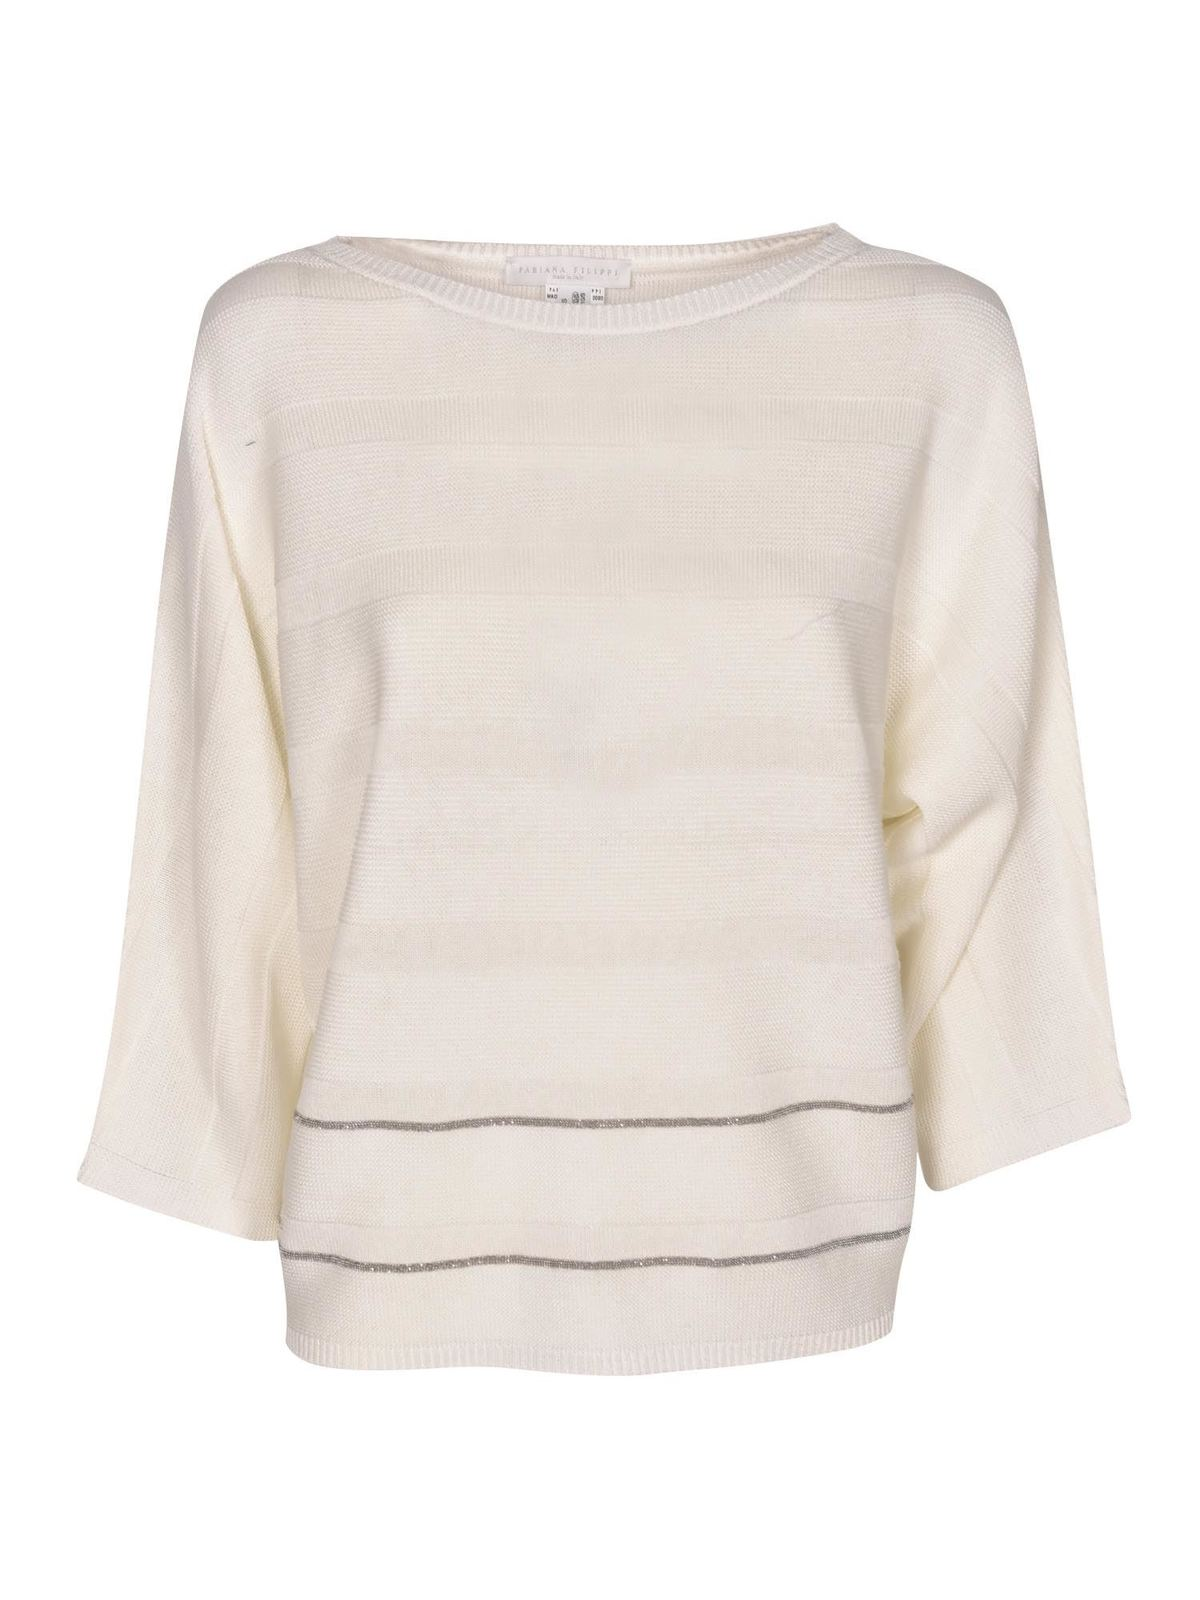 Fabiana Filippi MICRO BEADS RIBBED SWEATER IN WHITE